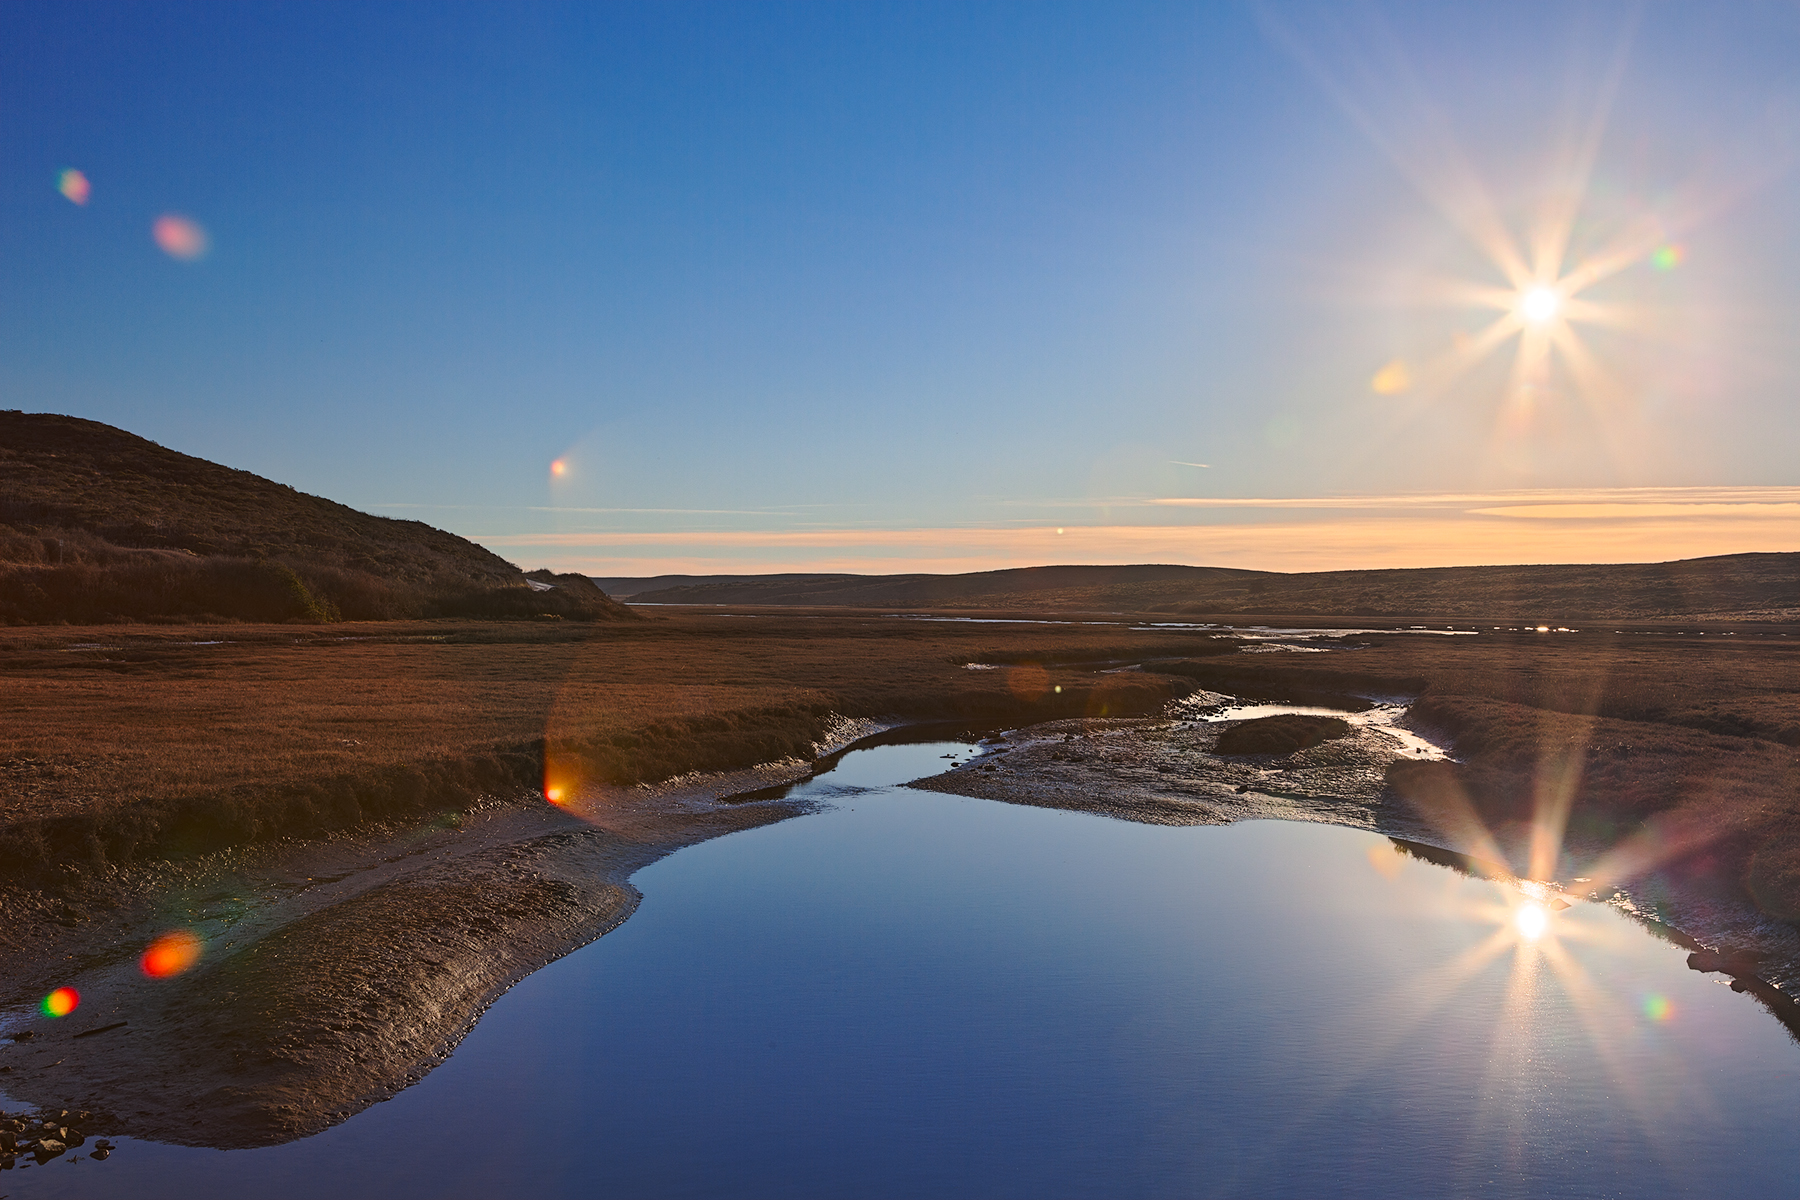 Twin Suns of Point Reyes - HDR, Resource, Spike, Somadjinn, Solar, HQ Photo